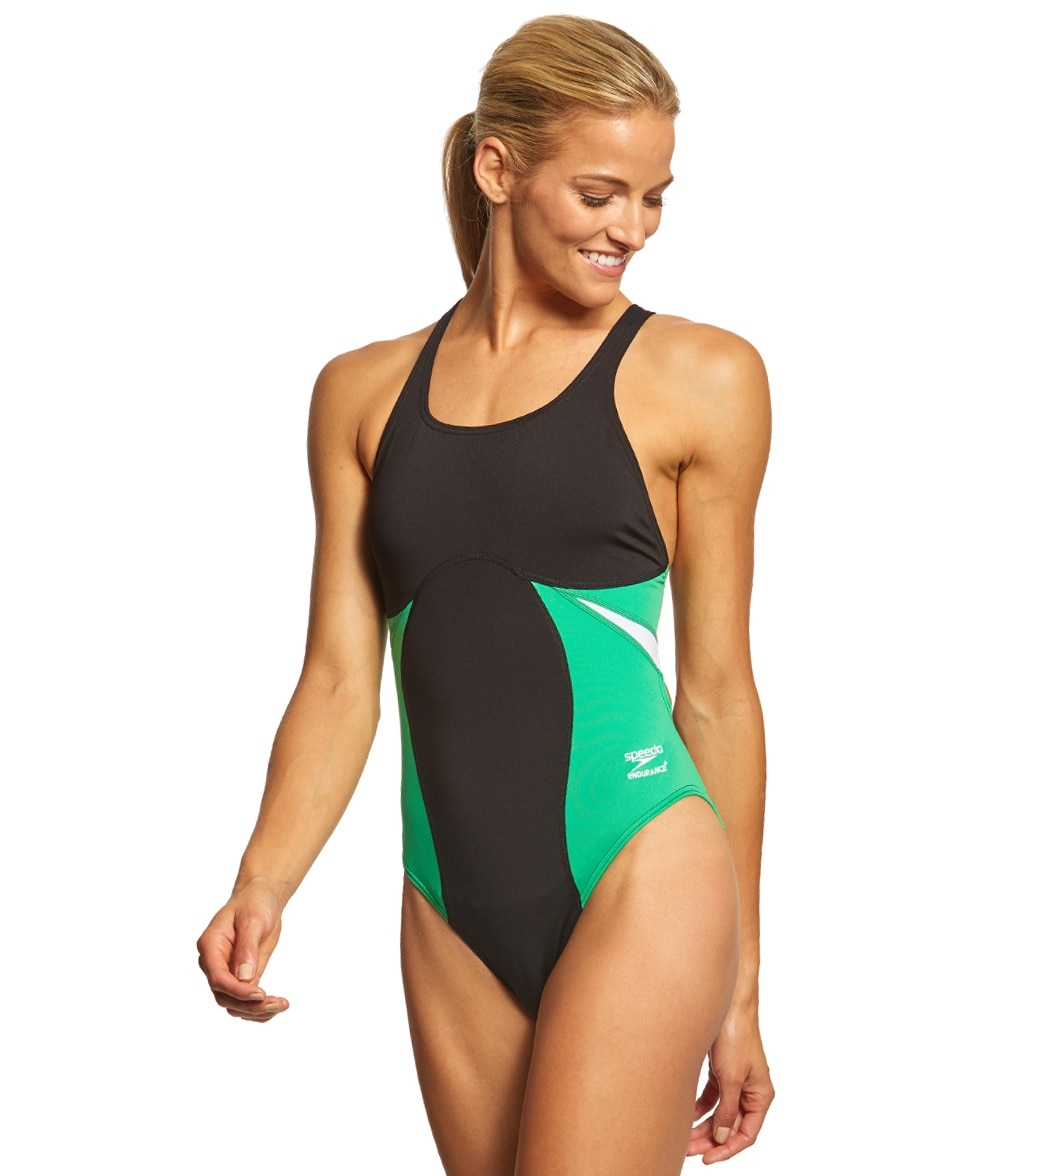 2969af0b1fee1 Speedo Women s Spark Splice Super Pro One Piece Swimsuit at SwimOutlet.com  - Free Shipping